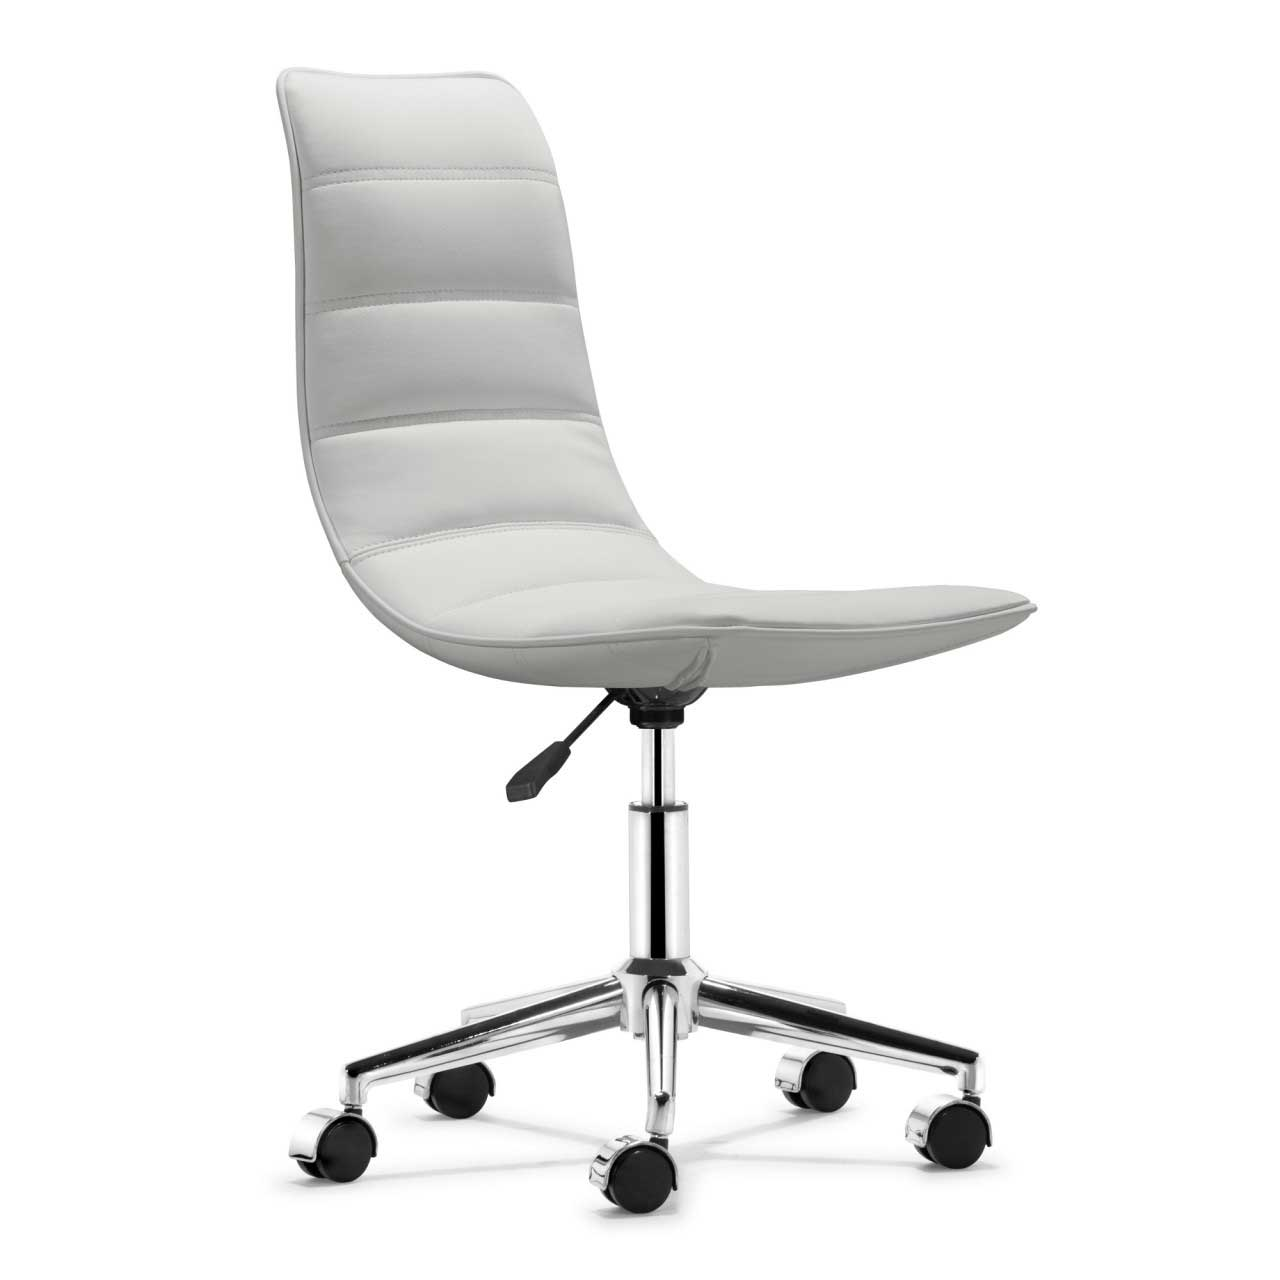 white office chair design and style most modern white office chair